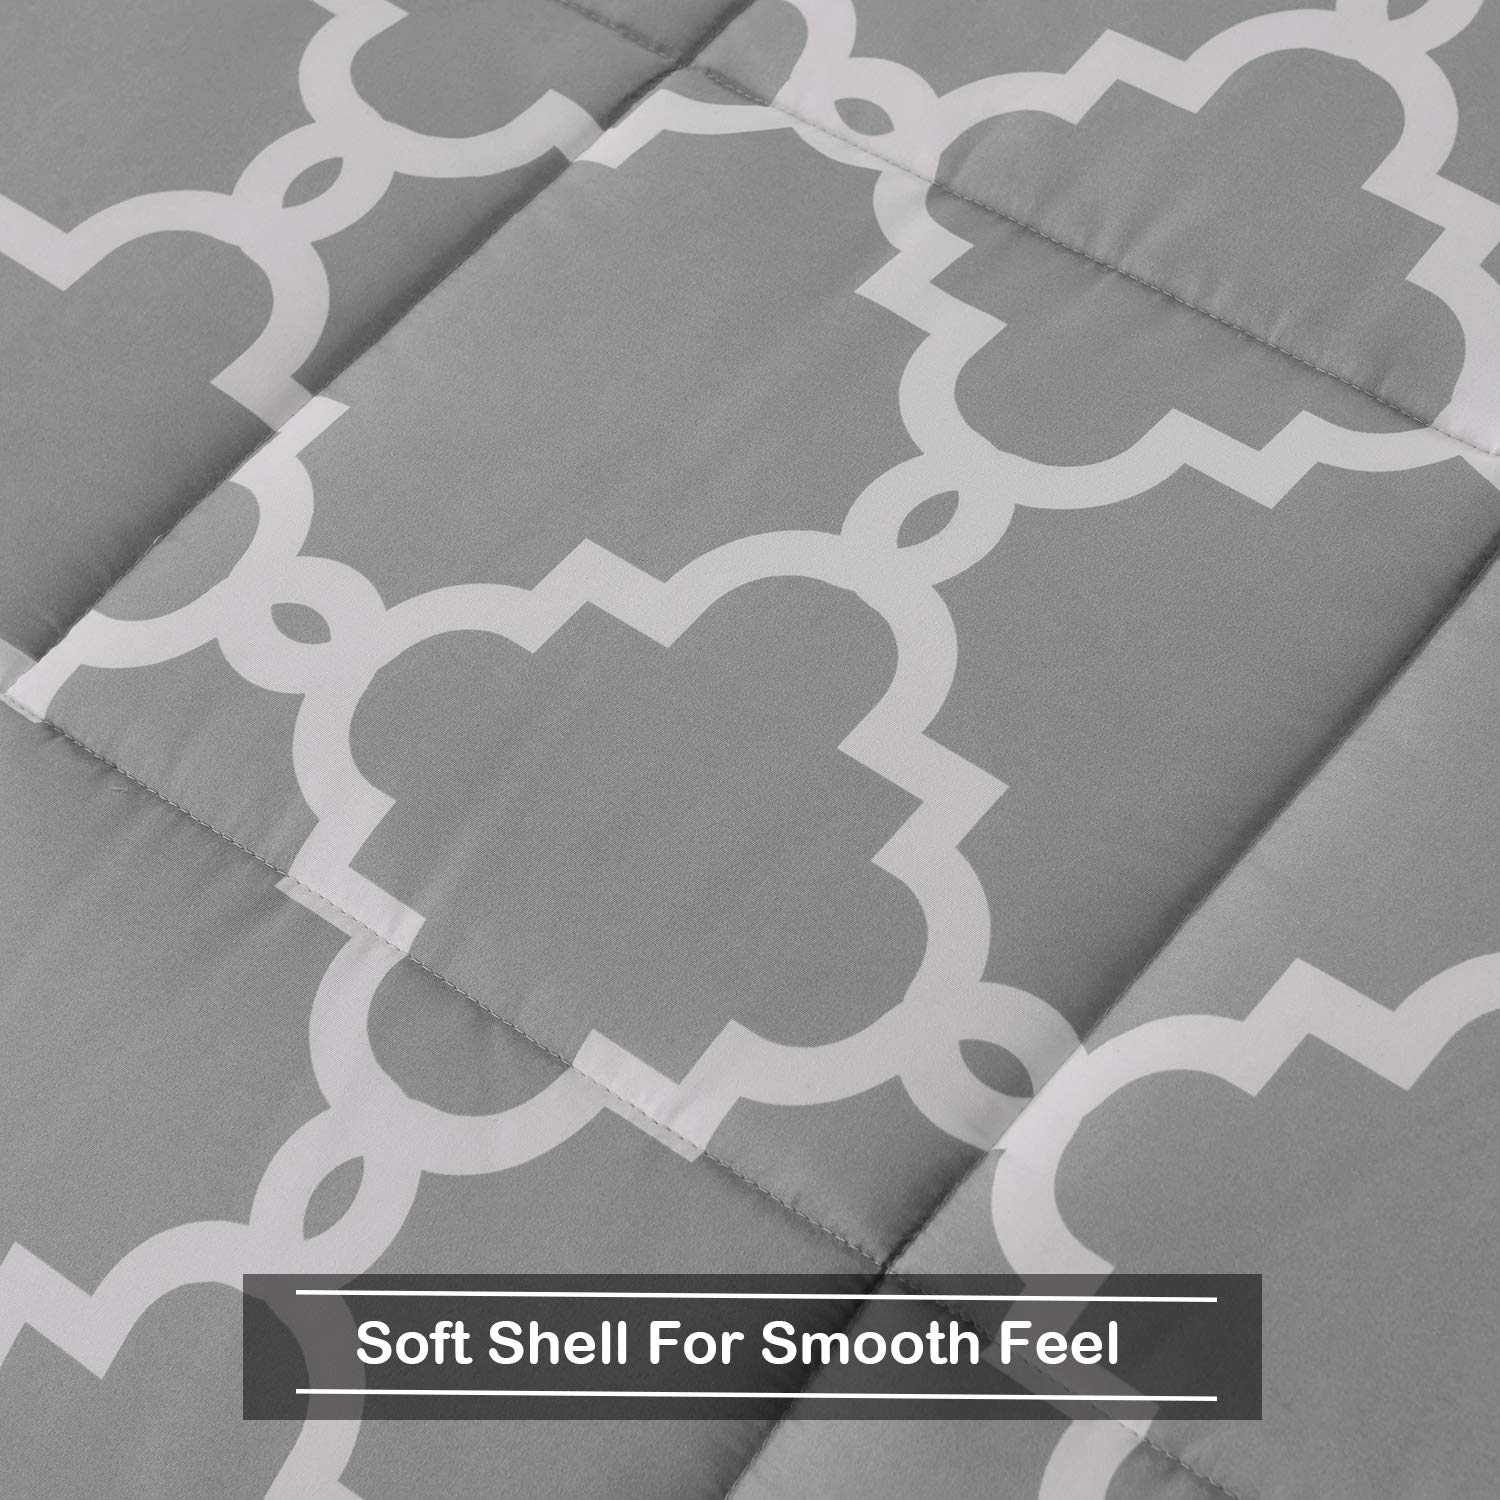 Reversible Bed Comforter with 2 Pillow Shams for All Seasons Basic Beyond Down Alternative Comforter Set King, Grey